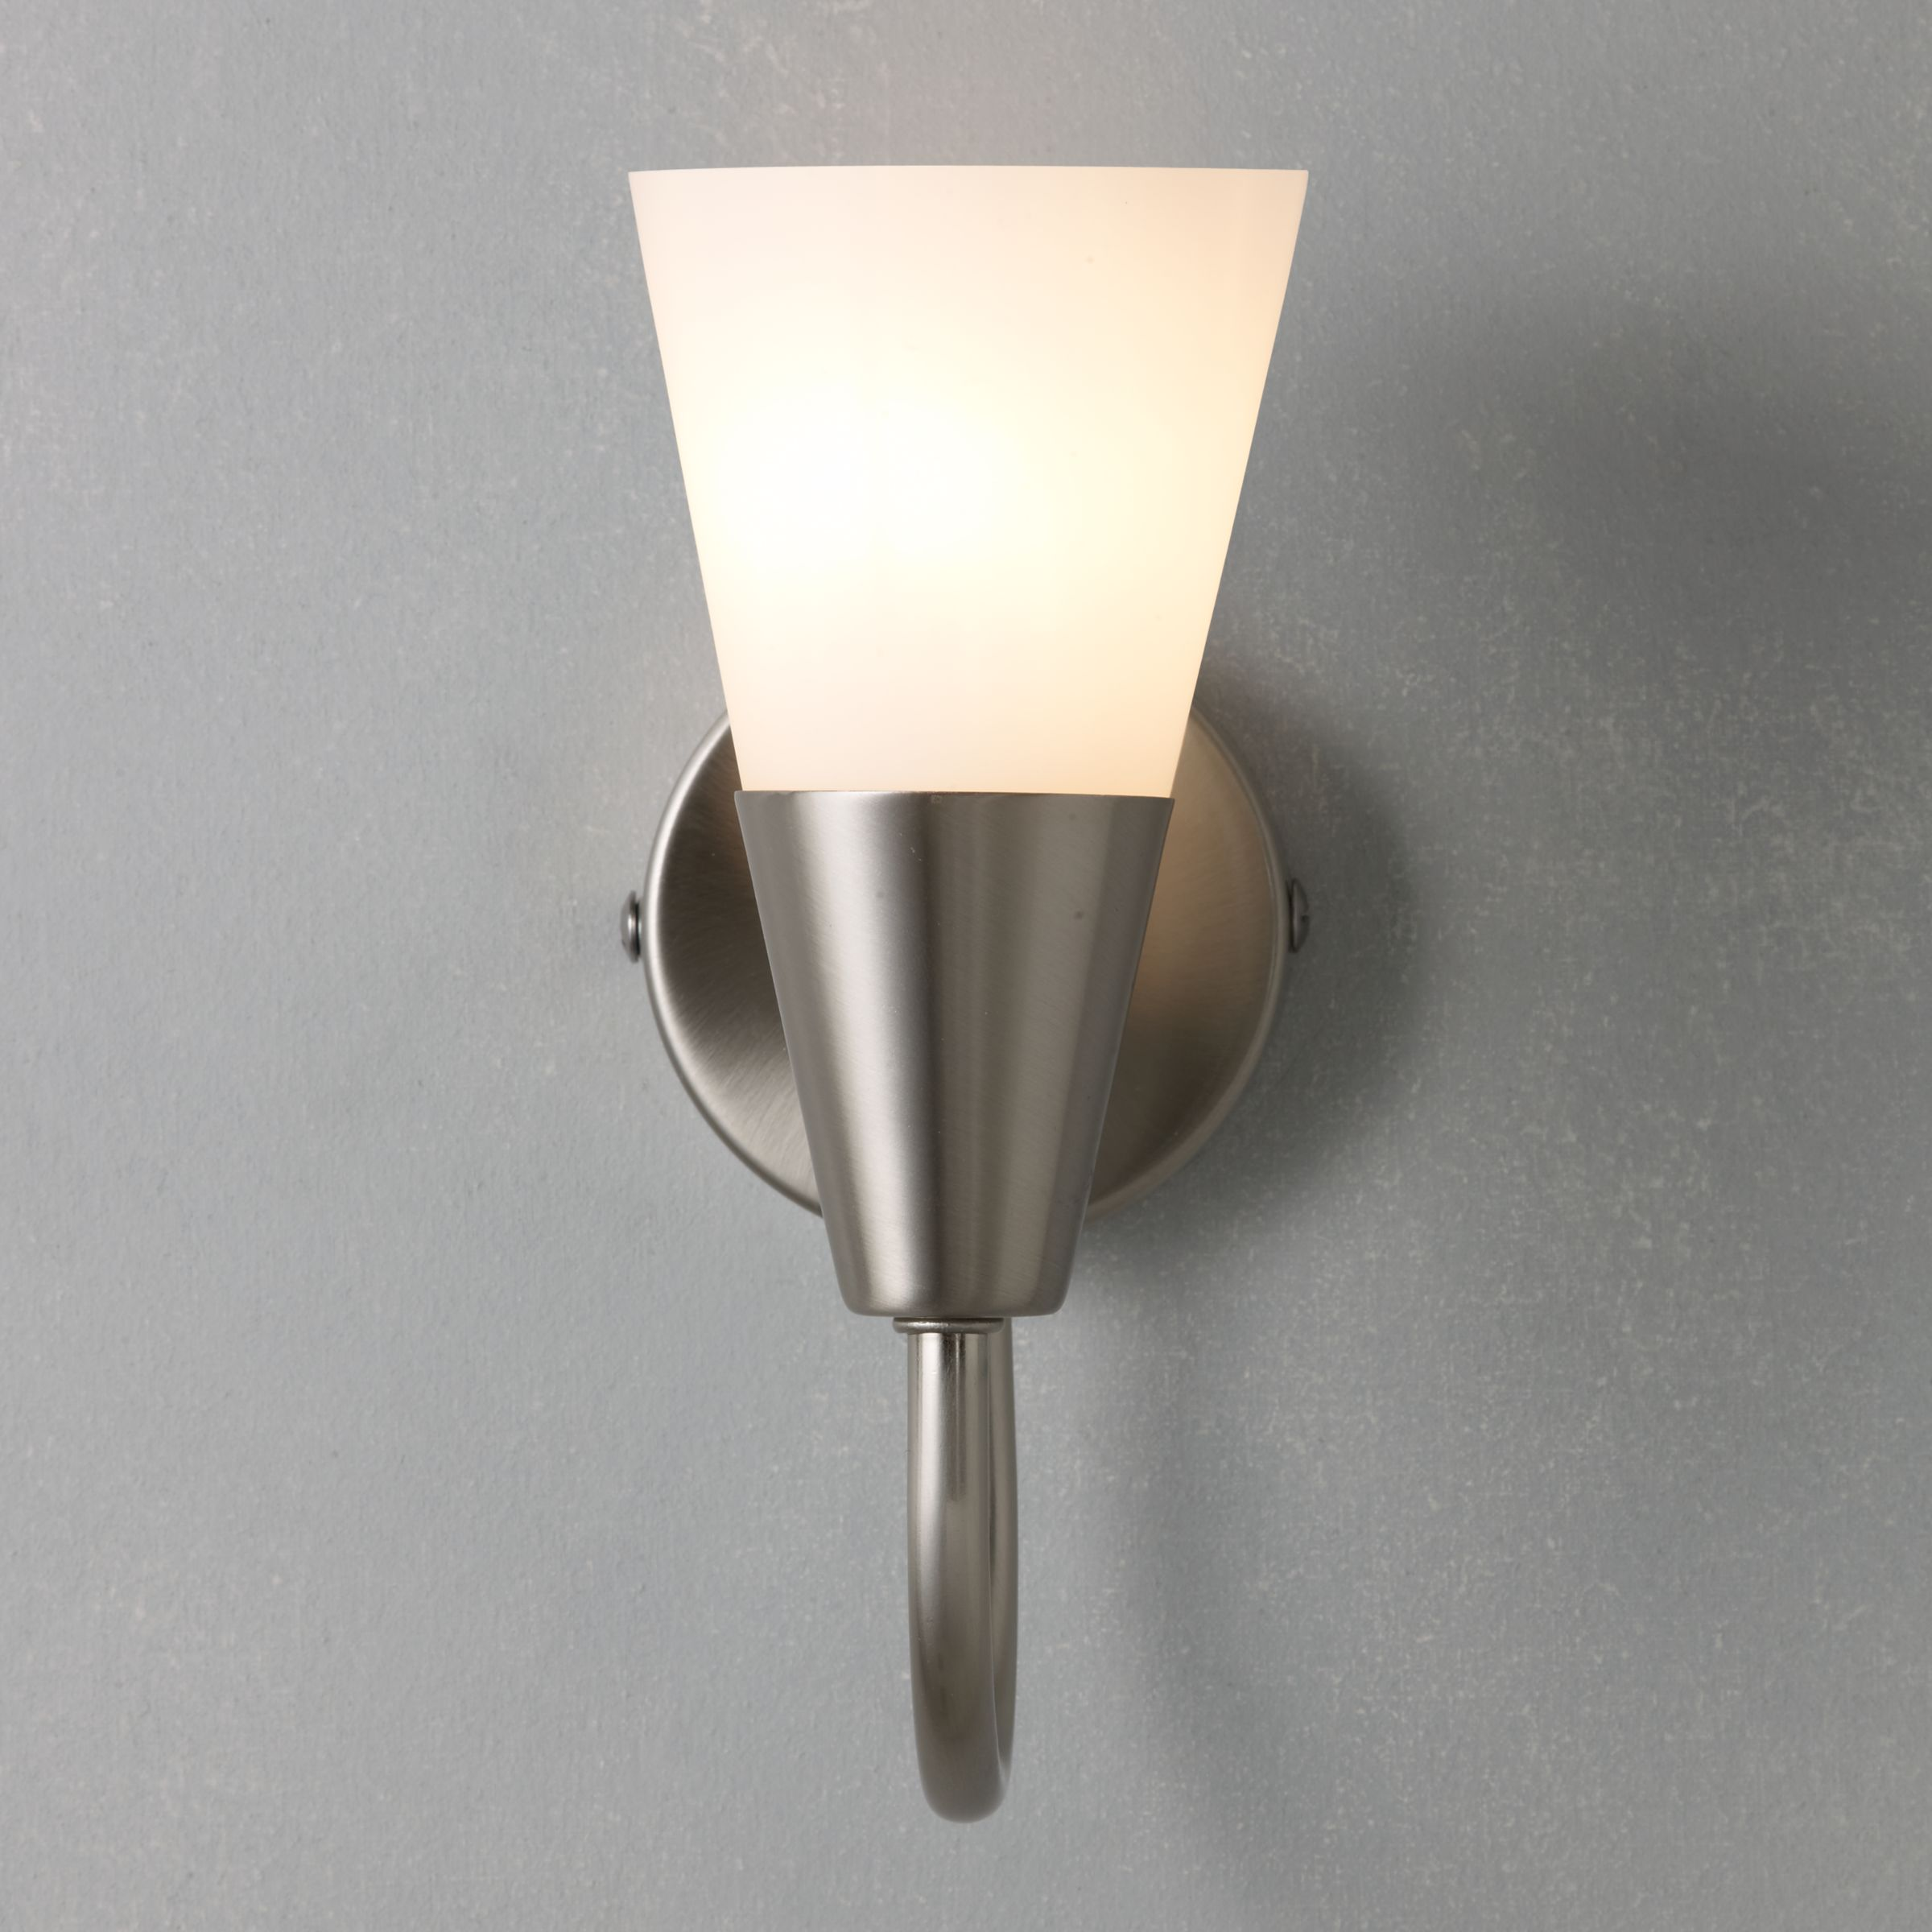 John Lewis Wall Lights Glass : Buy John Lewis The Basics Lulu Wall Light, Brushed Chrome John Lewis